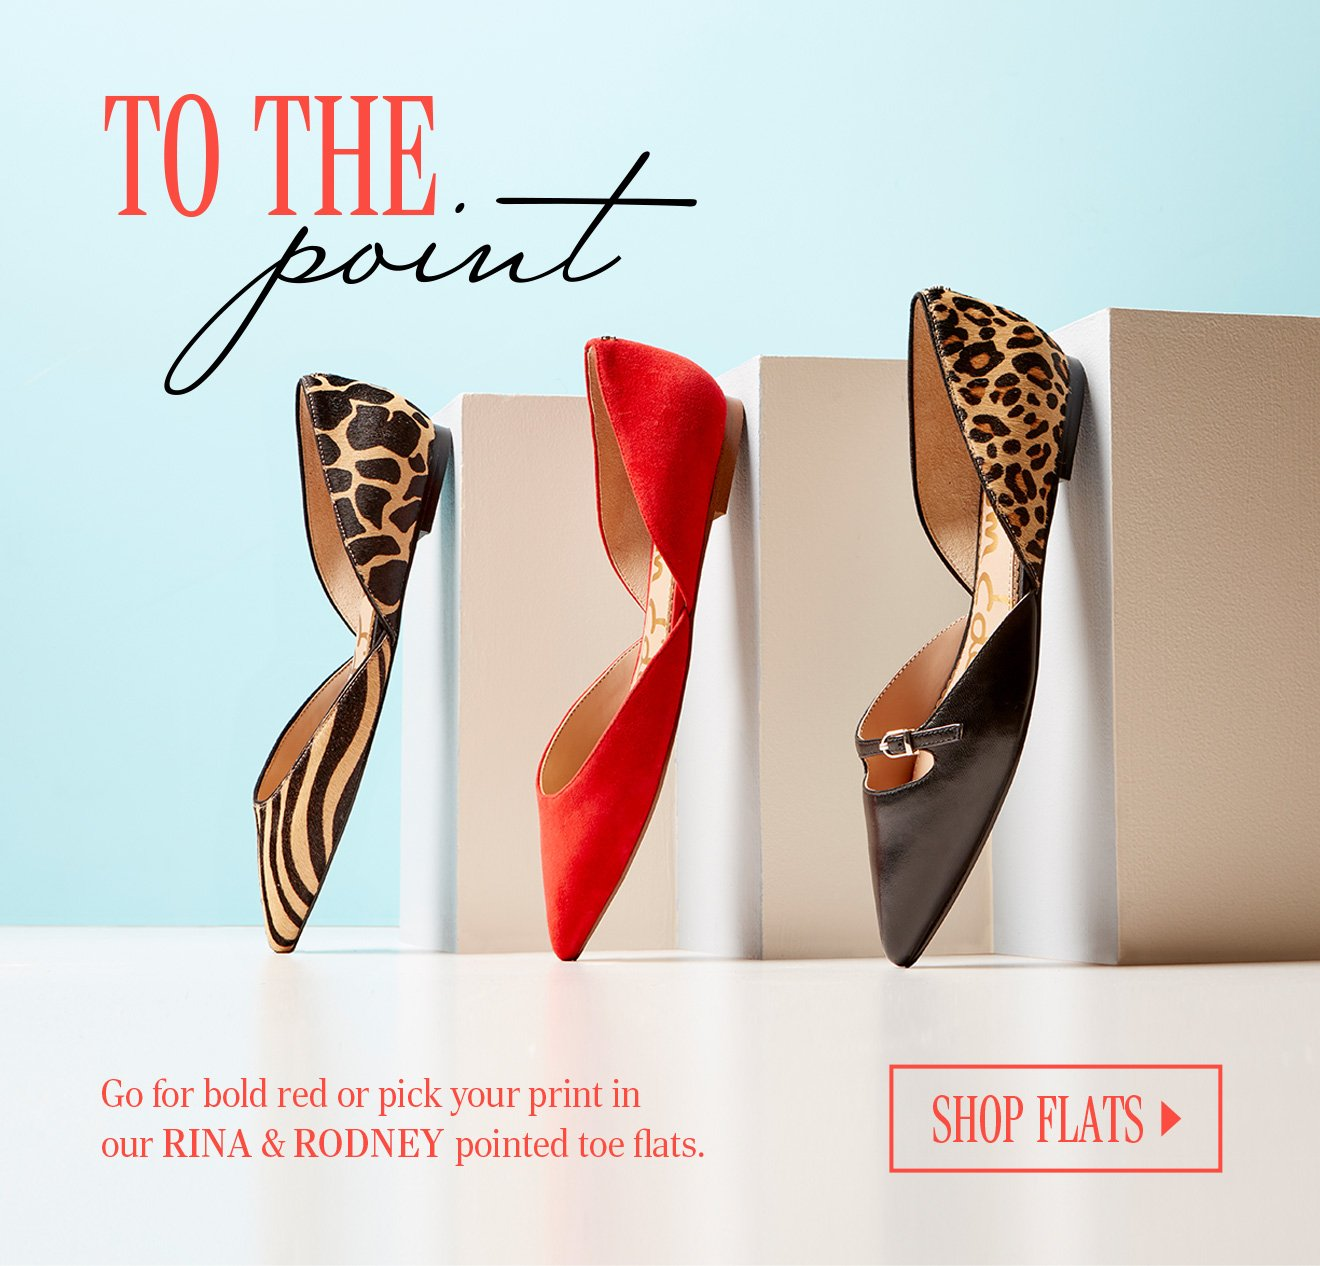 TO THE POINT. Go for bold red or pick your print inour RINA & RODNEY pointed toe flats. SHOP FLATS.